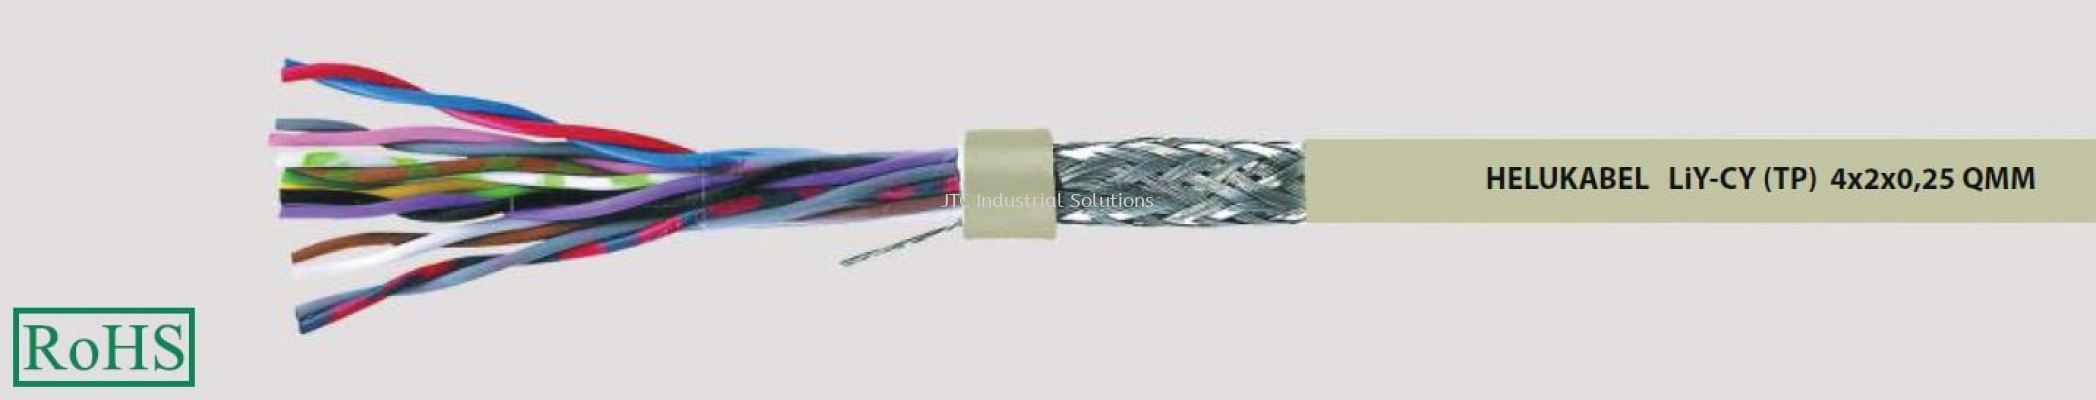 LiY-CY(TP) (Flexible, Cu-screened, colour coded to DIN 47100, EMC friendly, meter marking)